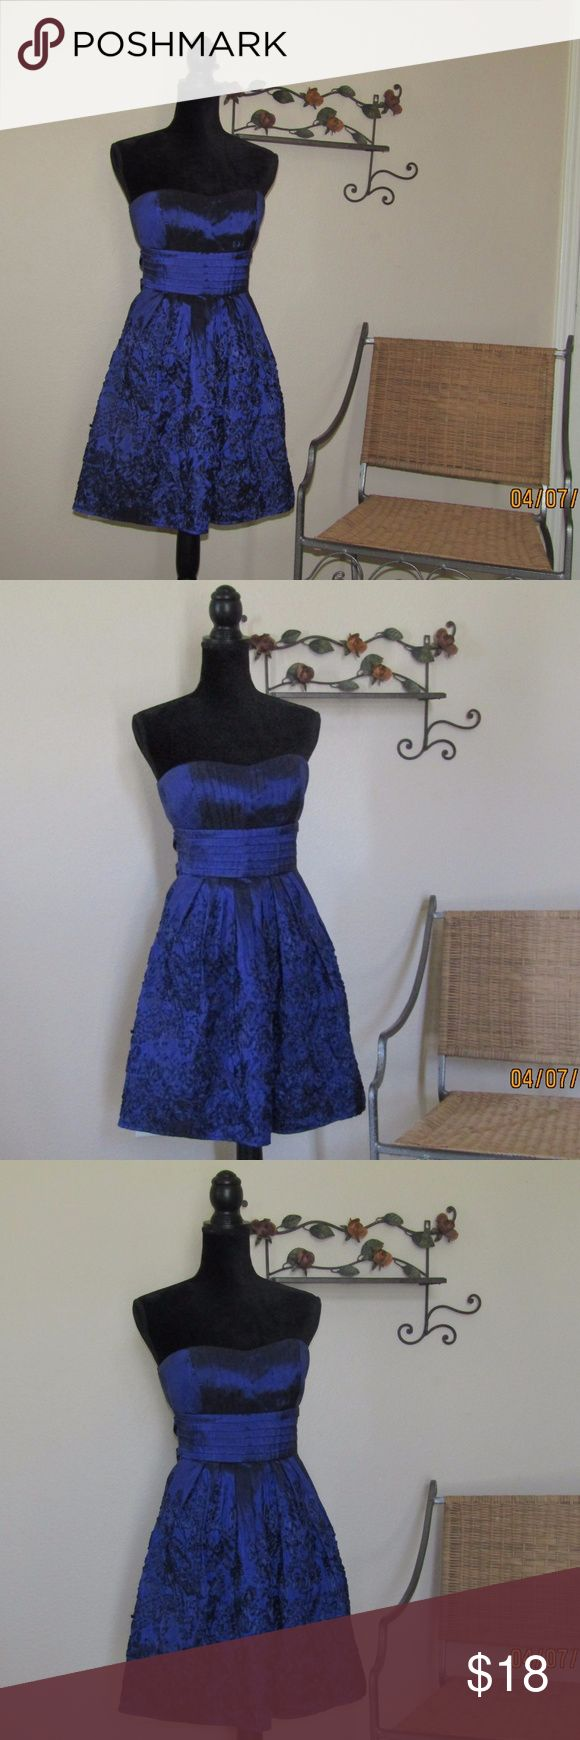 B. Smart Purple-Blue Formal Dress Strapless 7/8 NWOT B. Smart Formal Dress  Purple-Blue Silky Look Strapless with a ribbon flowery design  Large bow on back Size: 7/8 B. Smart Dresses Strapless